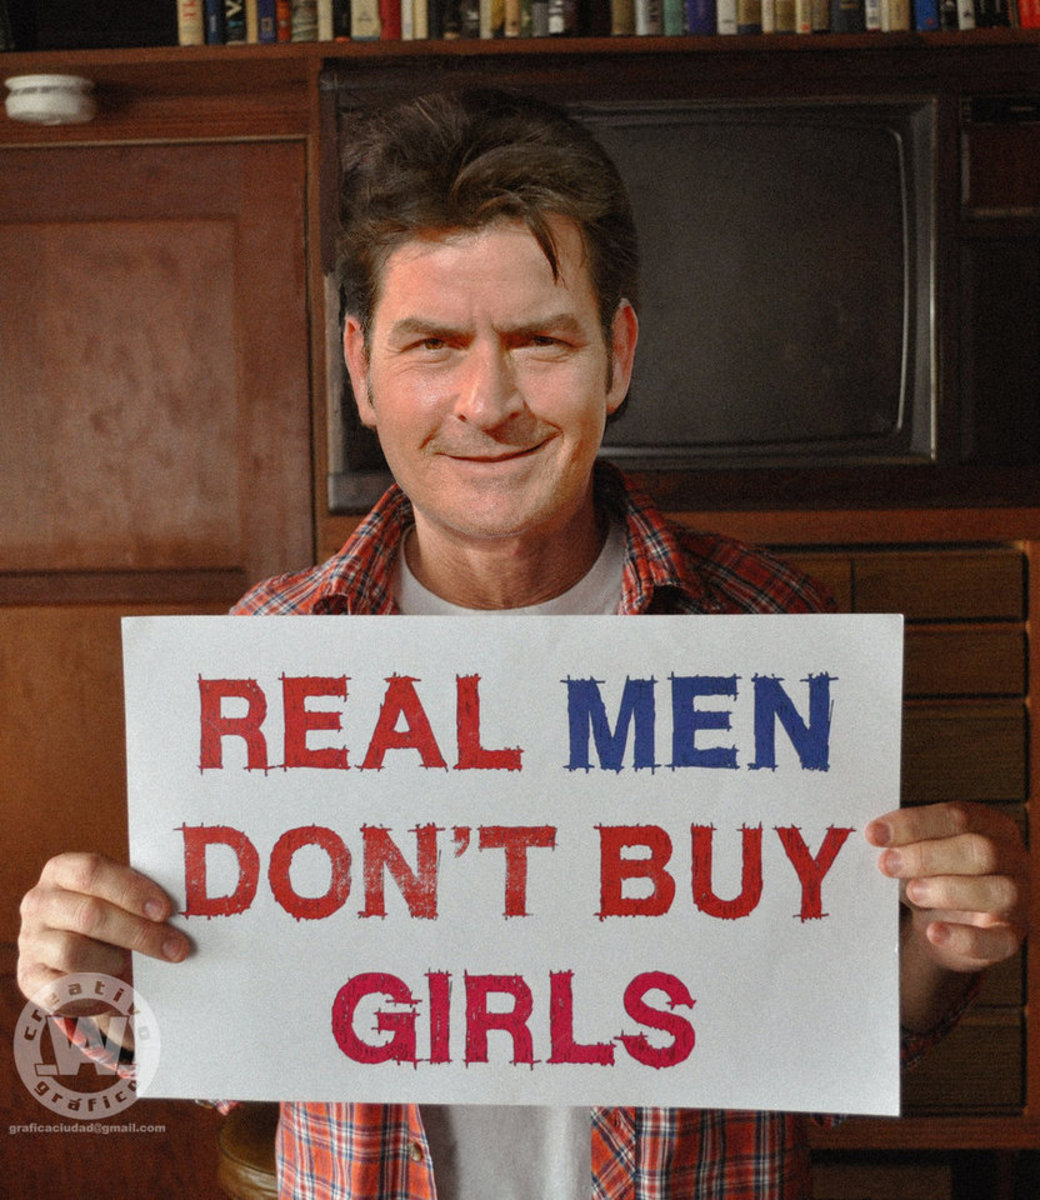 Real Men Don't Buy Girls - Charlie Sheen